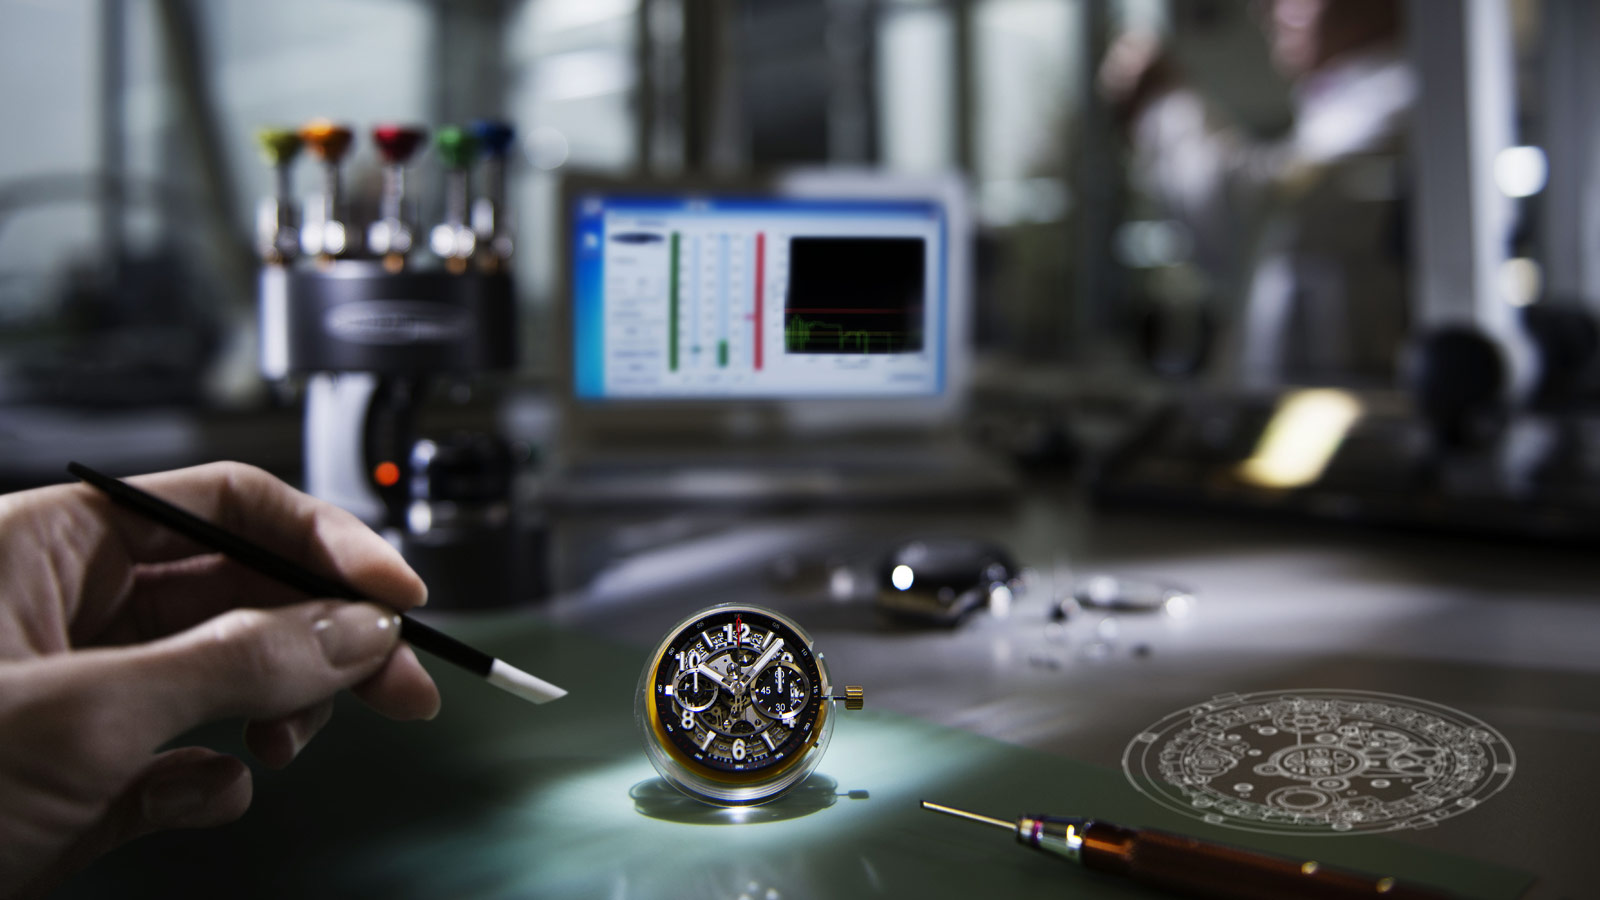 Baselworld 2019 Year of Change for Watchmakers and Jewellery Makers - Hublot baselworld 2019 Baselworld 2019: Year of Change for Watchmakers and Jewellery Makers Baselworld 2019 Year of Change for Watchmakers and Jewellery Makers Hublot